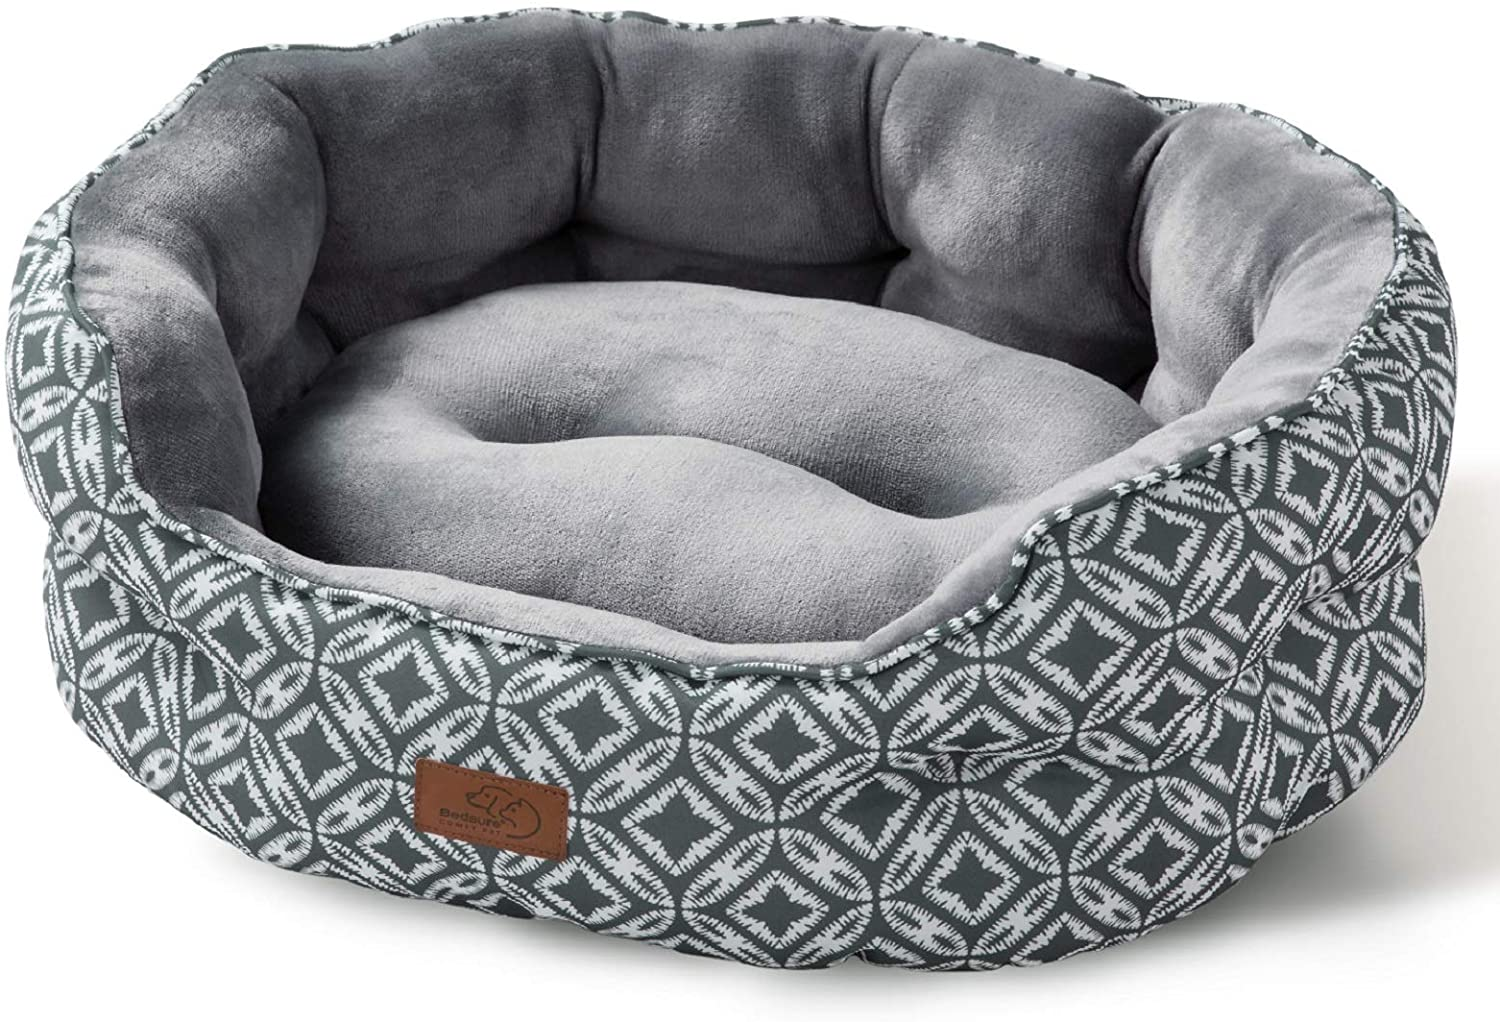 Amazon Com Bedsure 25 Inch Small Dog Bed Cat Bed Round Pet Beds For Indoor Cats Or Small Dogs Round Machine Washable Super Soft Plush Flannel Pet Supplies Slip Resistant Oxford